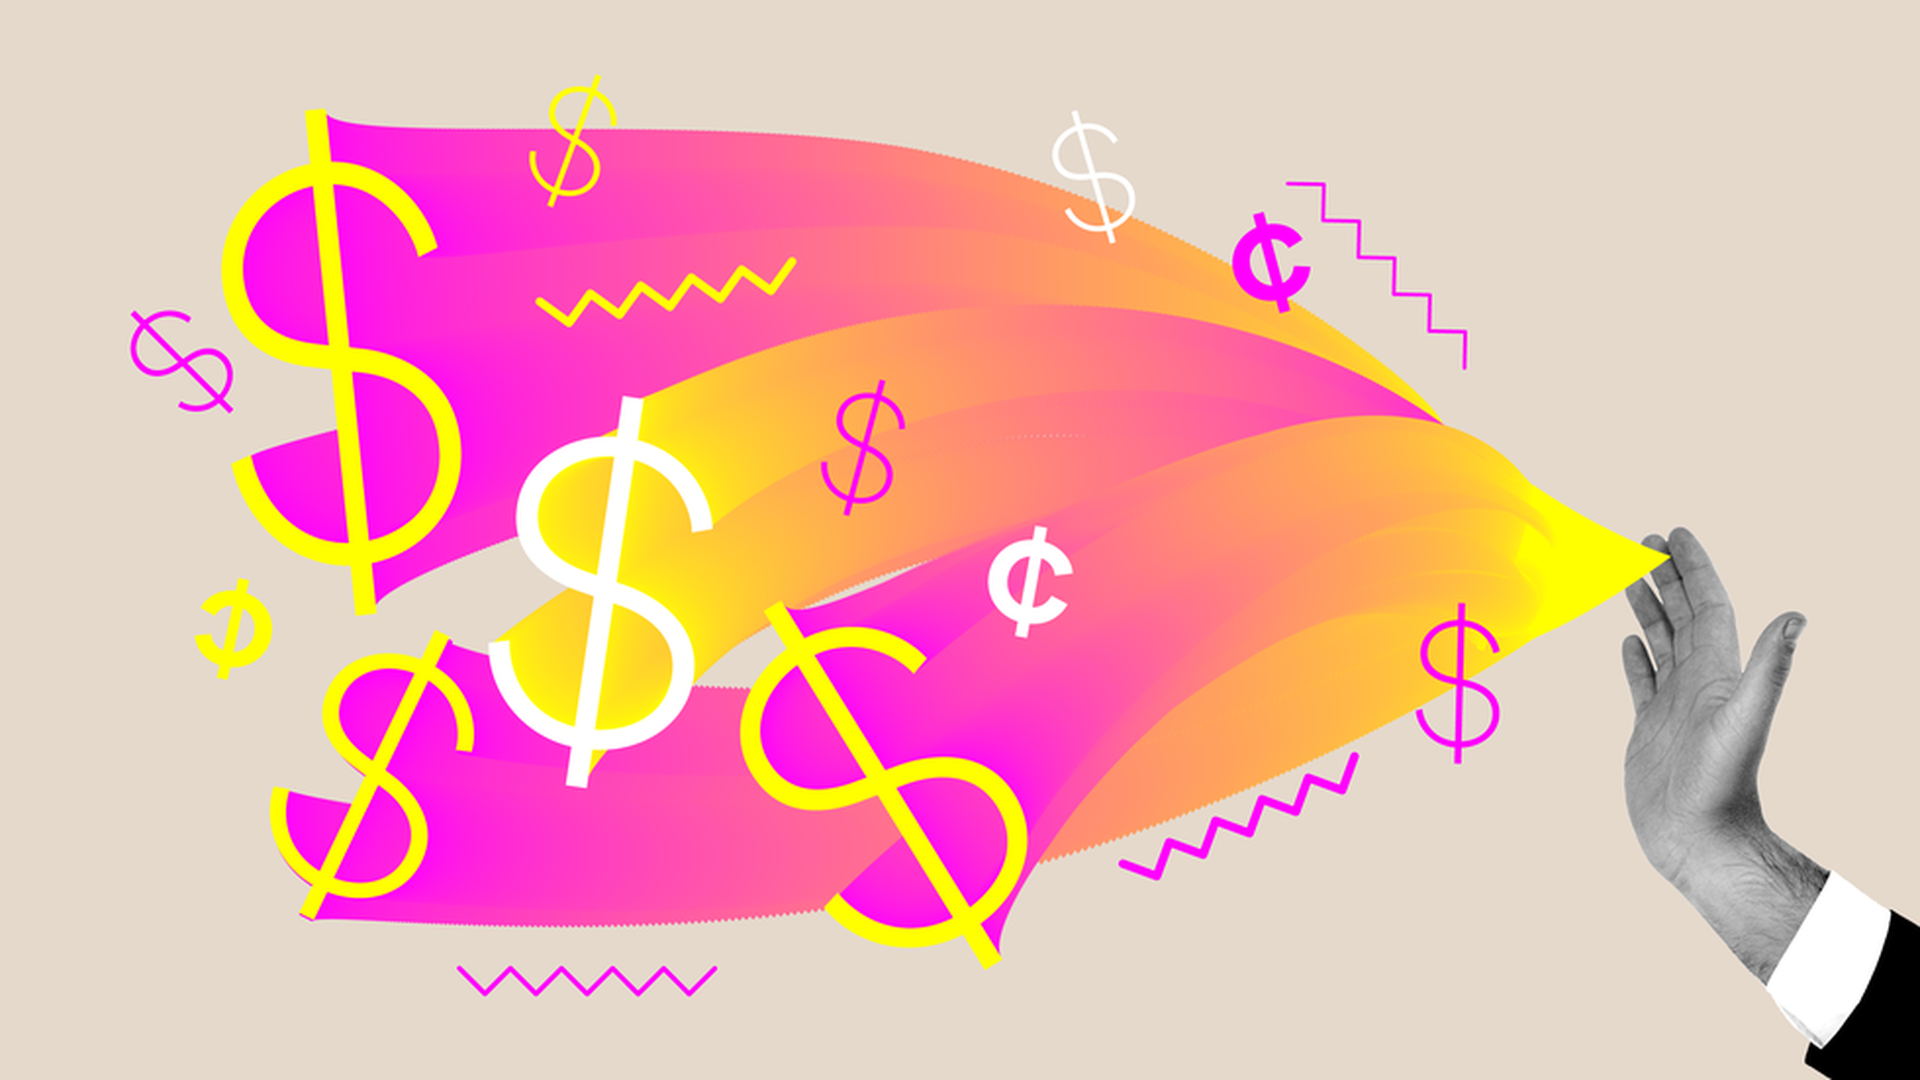 Dollar signs flowing from hand illustration